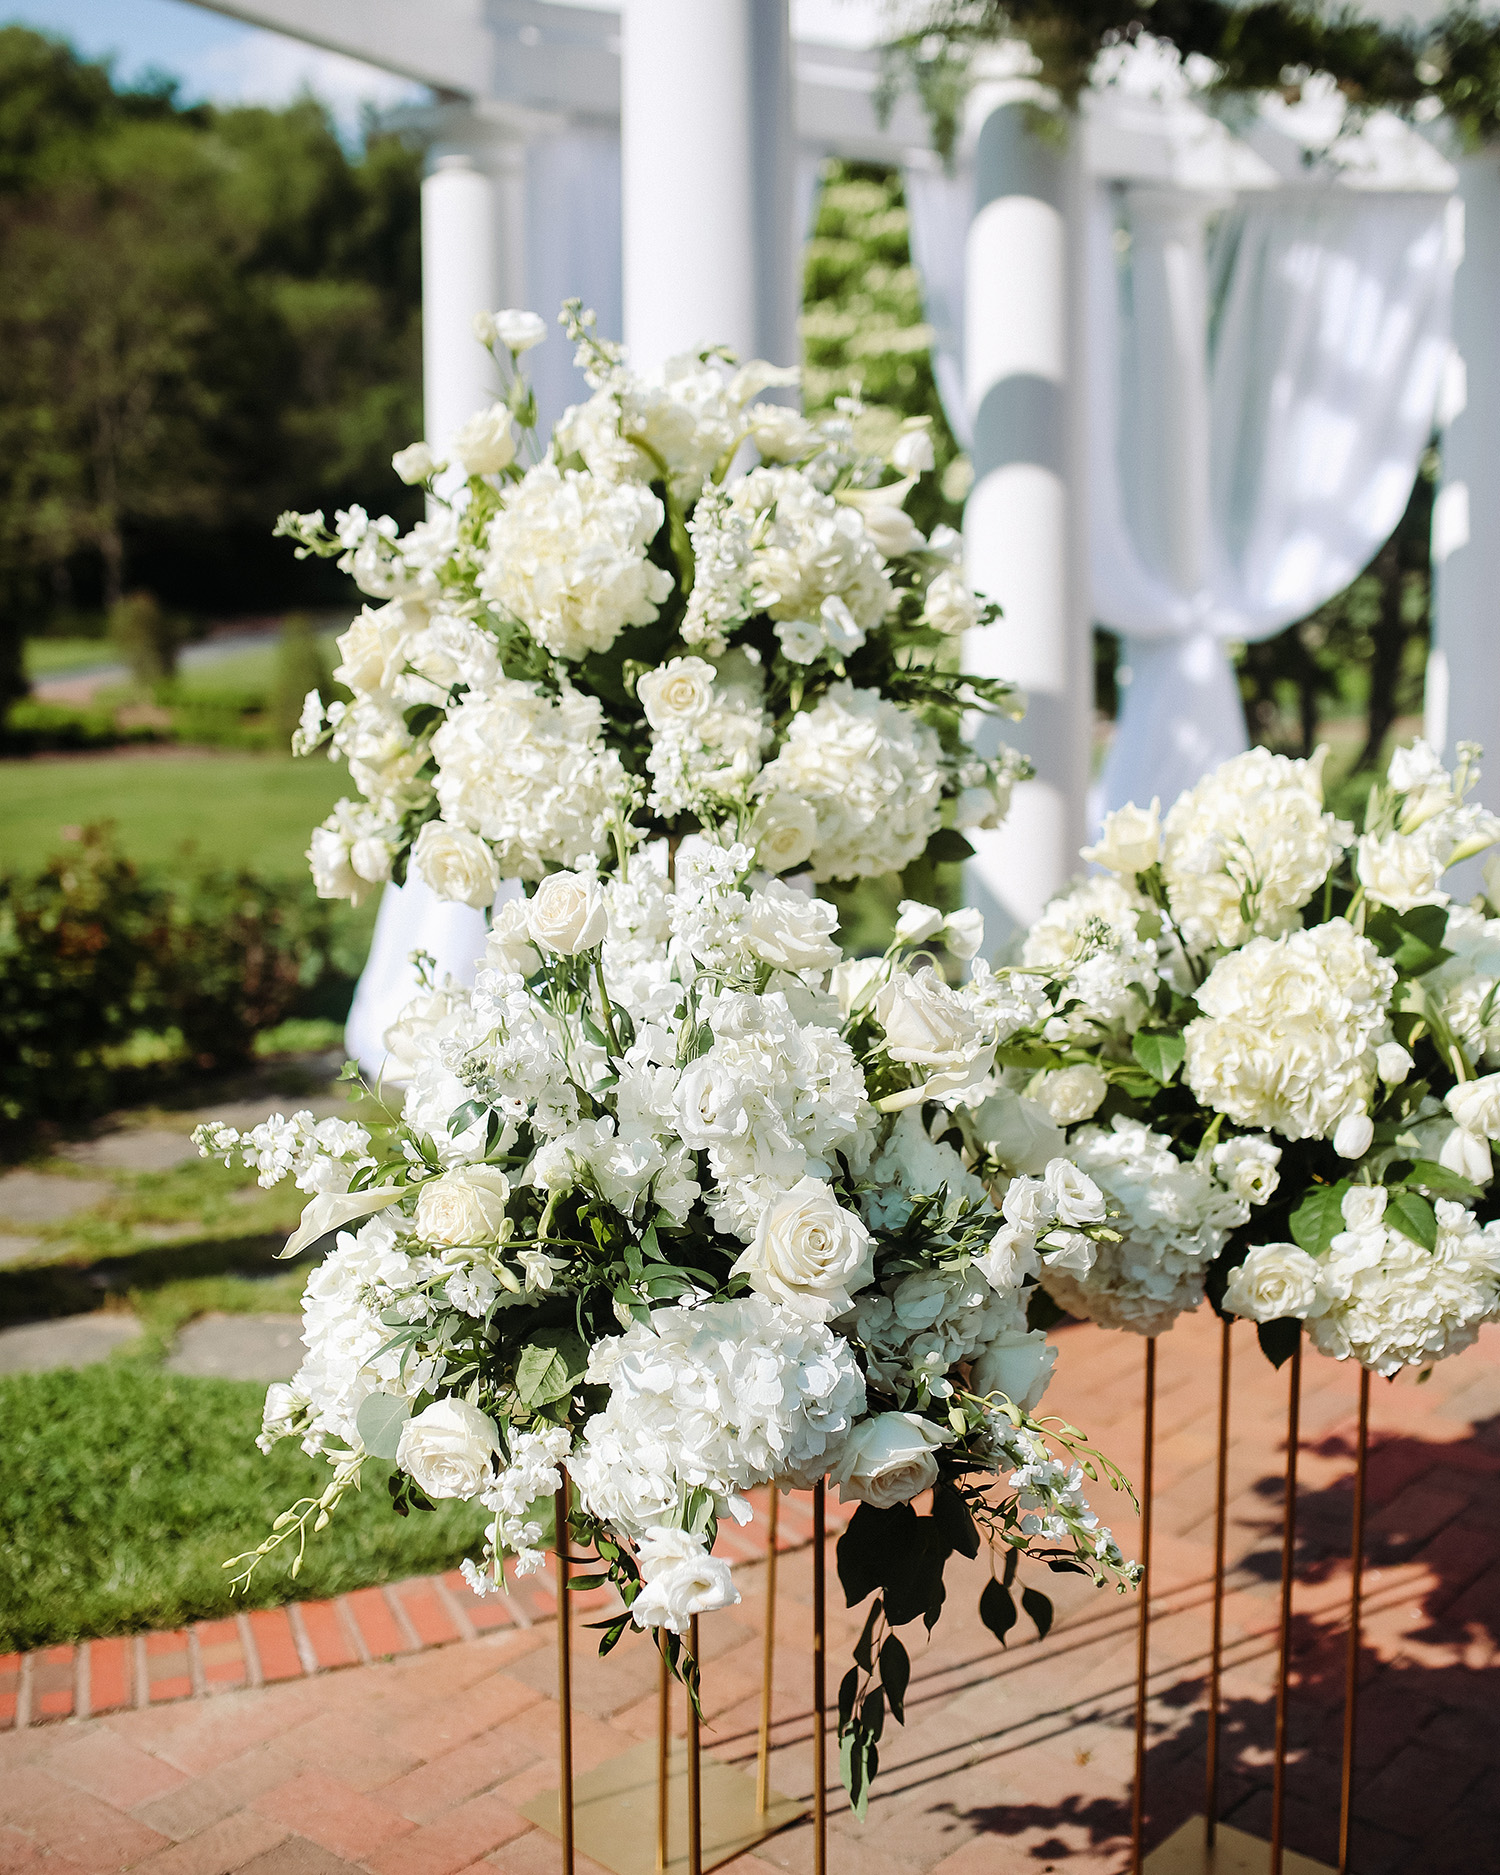 bryanna nick wedding outdoor floral decorations